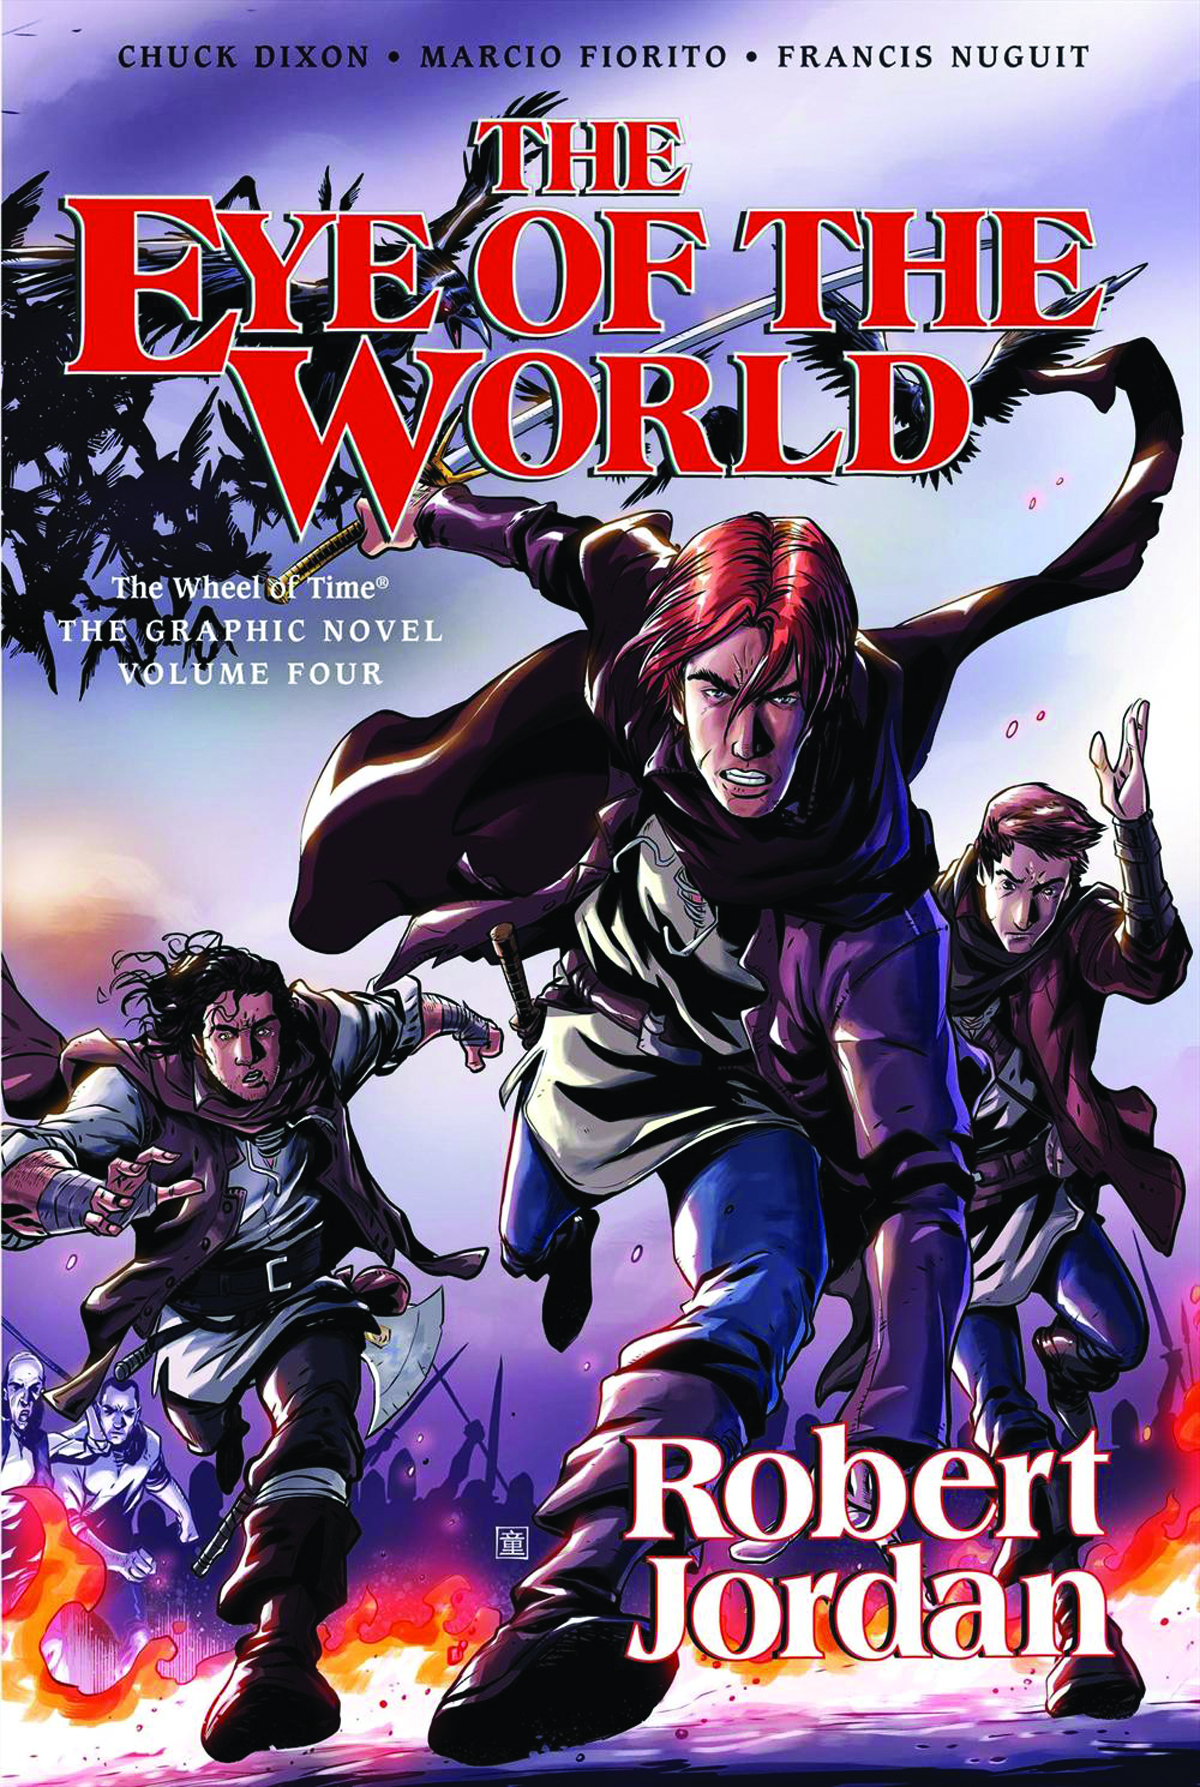 ROBERT JORDAN EYE OF THE WORLD HC VOL 04